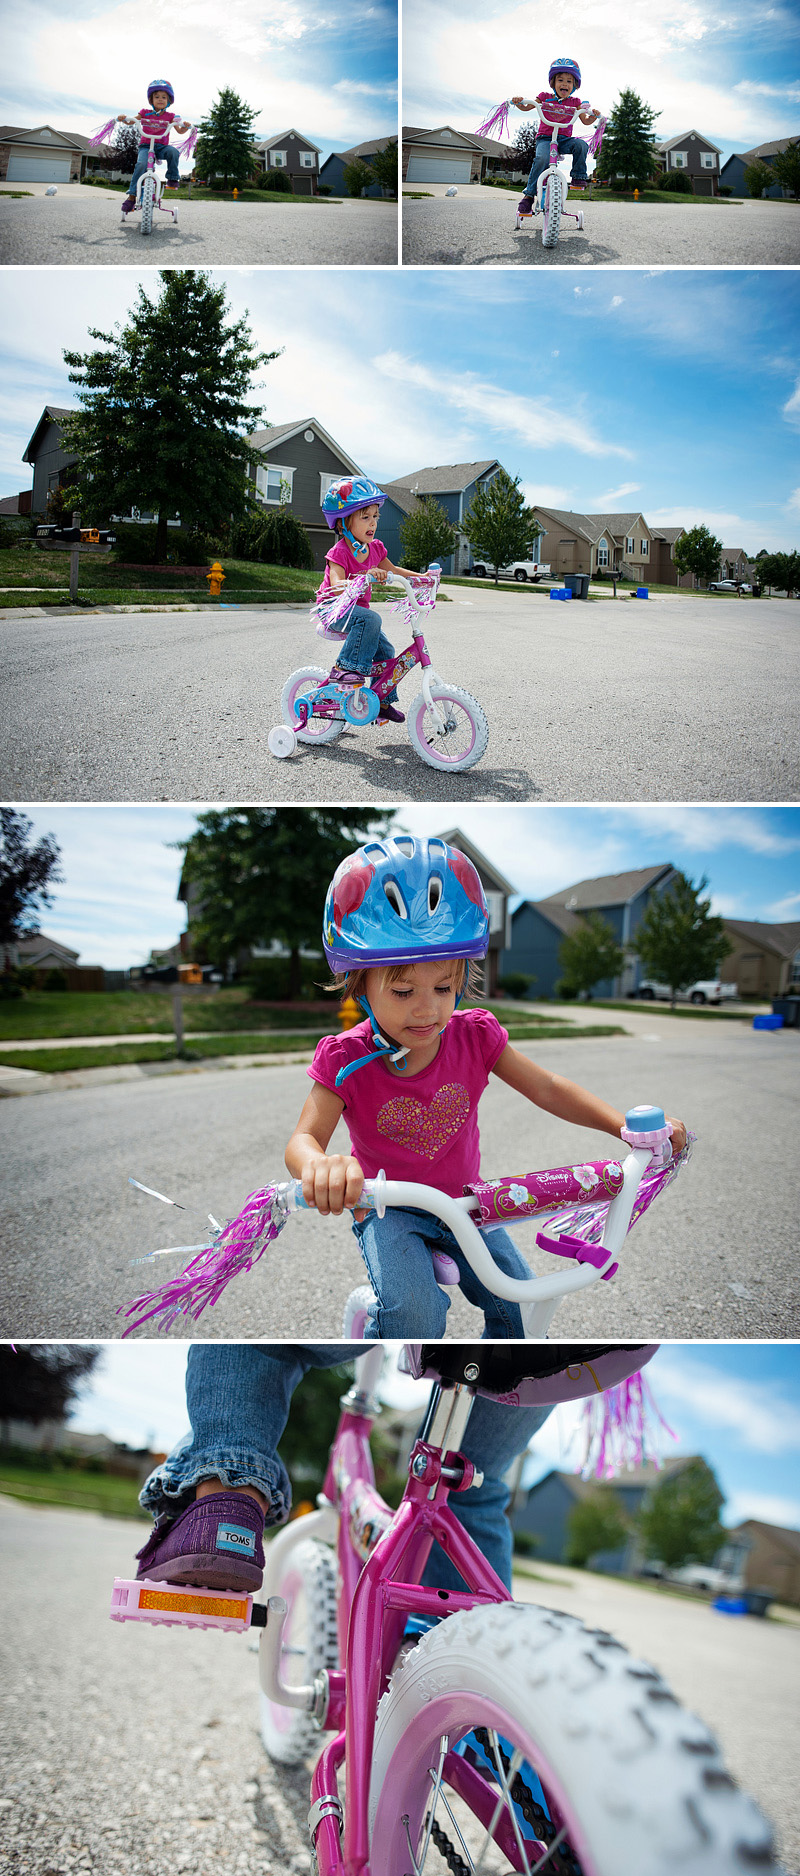 Little girl on her bicycle.